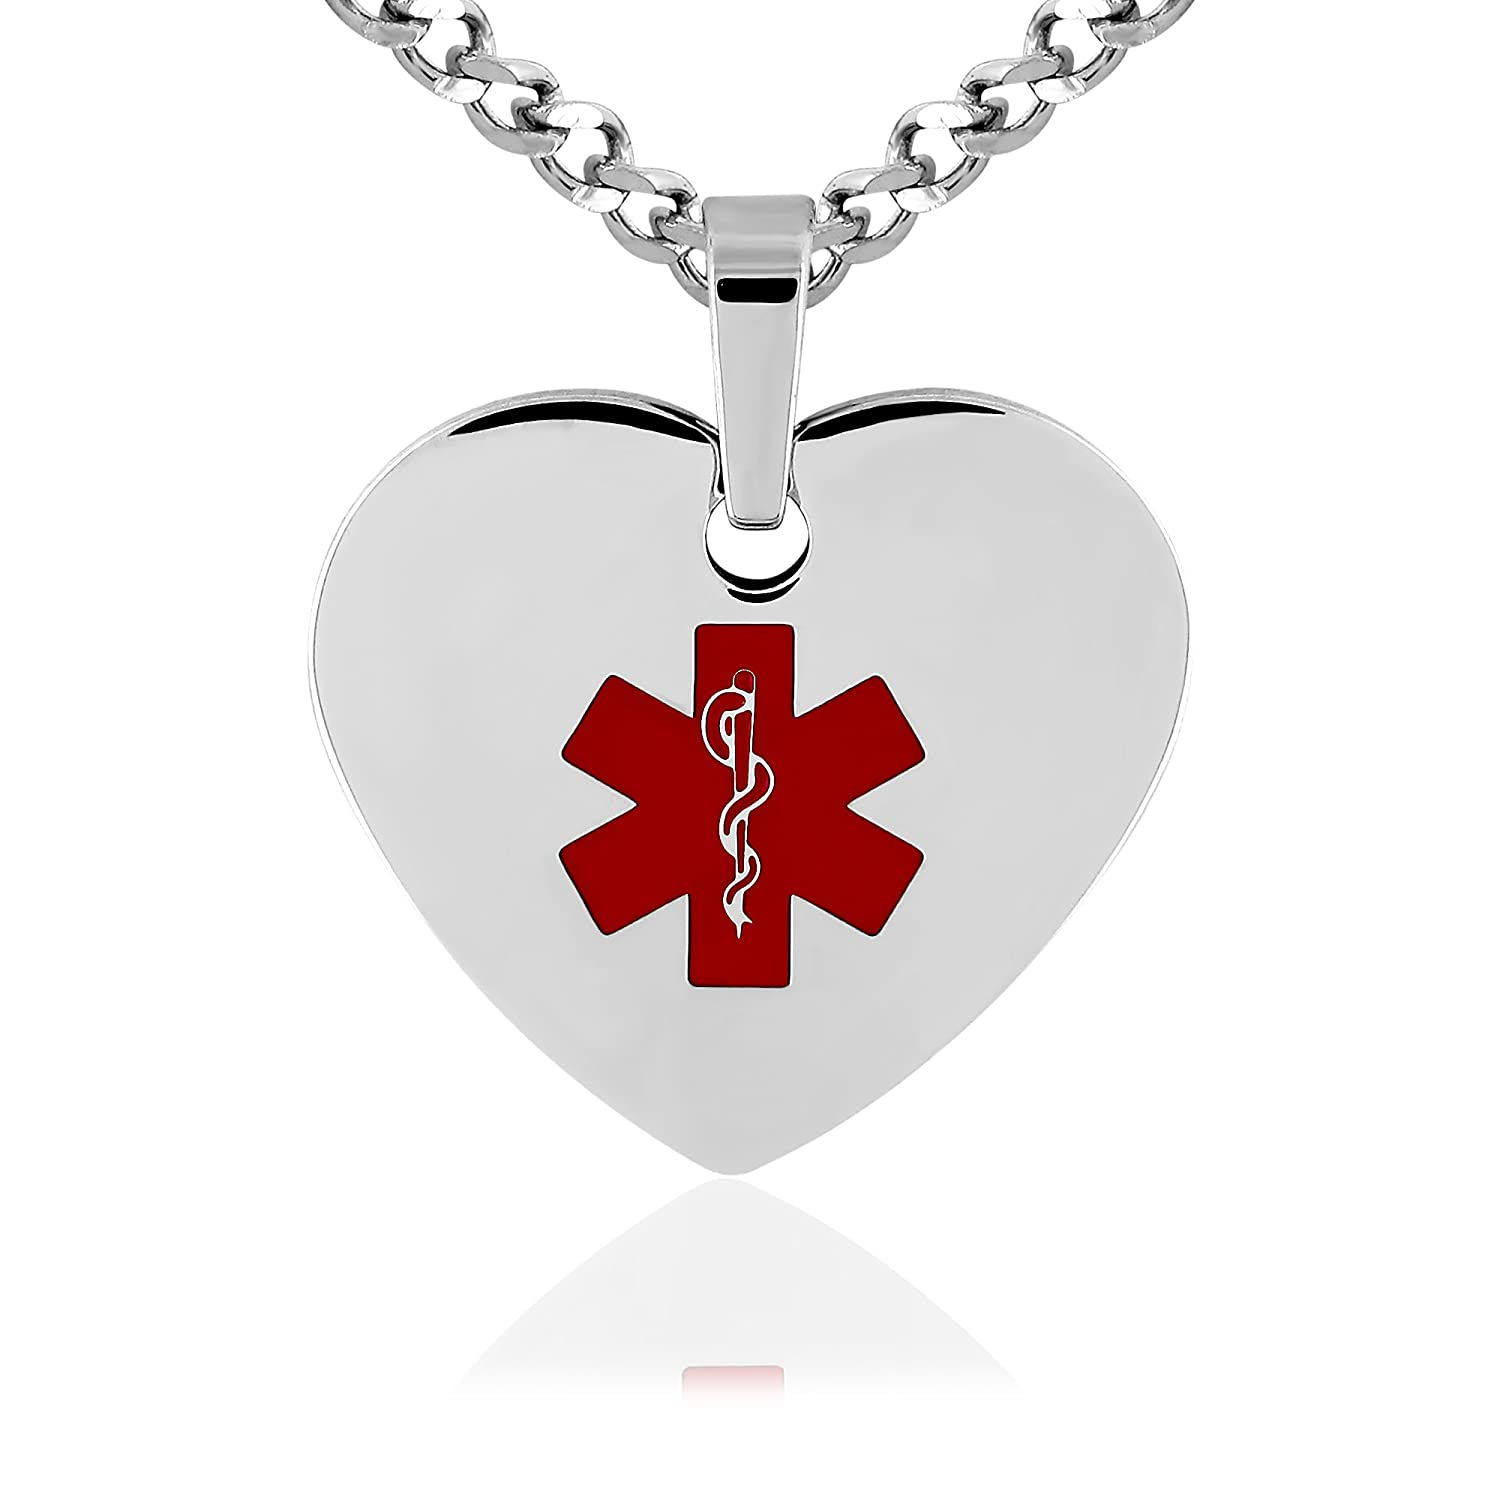 MedicEngraved Medical ID Red Enamel Heart Neckalce Made with Surgical 316L Stainless Steel MHPM-MED-R-W